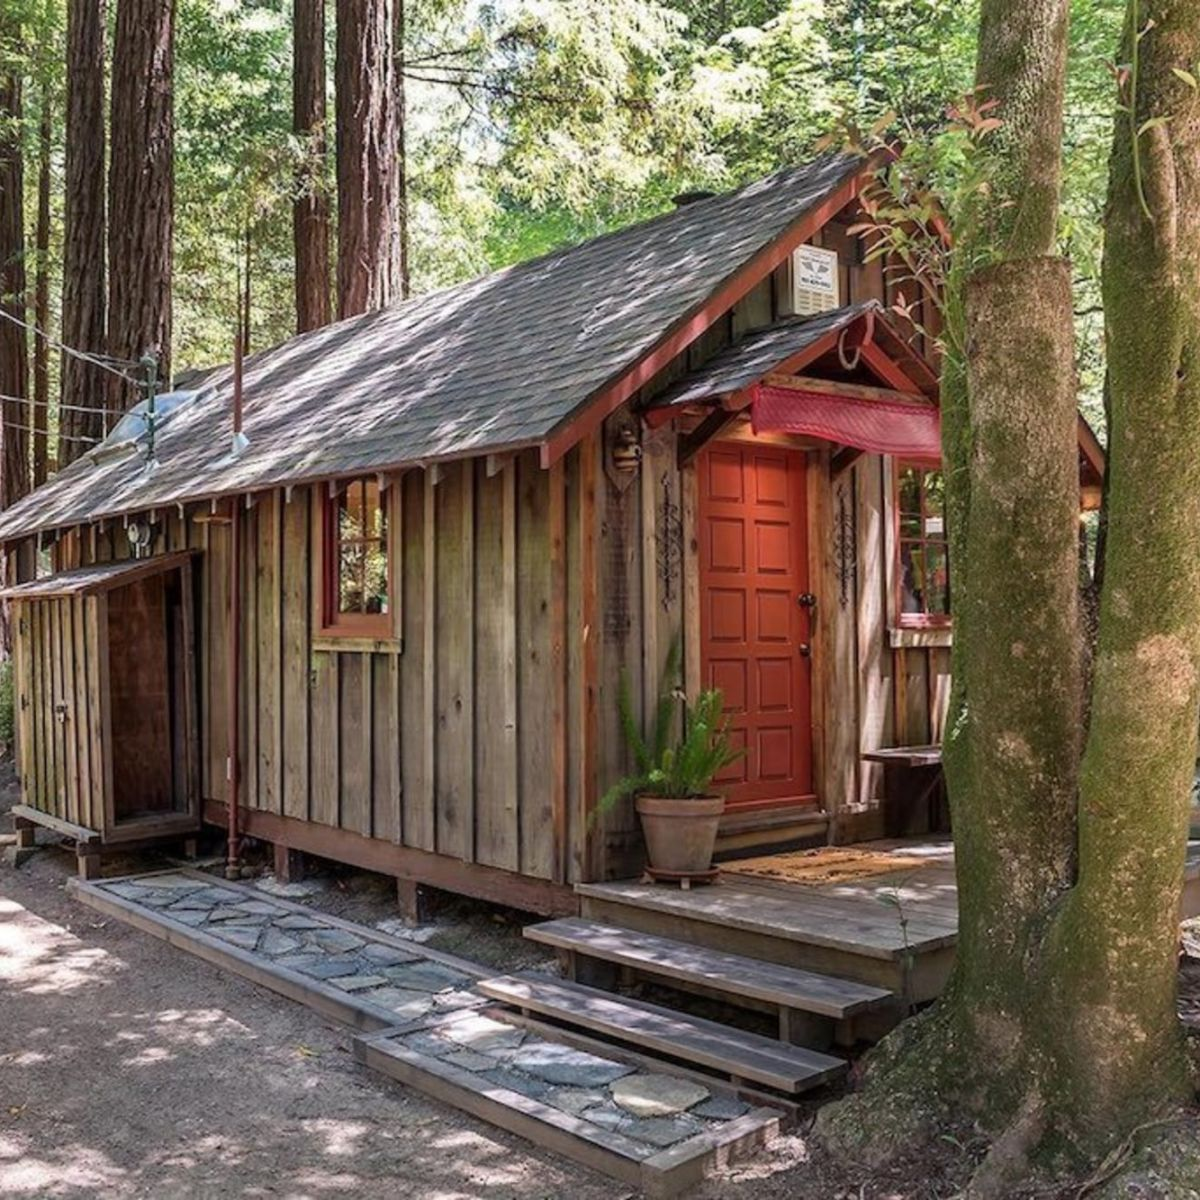 Tiny House Zen Getaway - Tiny House for Sale in Monte Rio, California -  Tiny House Listings